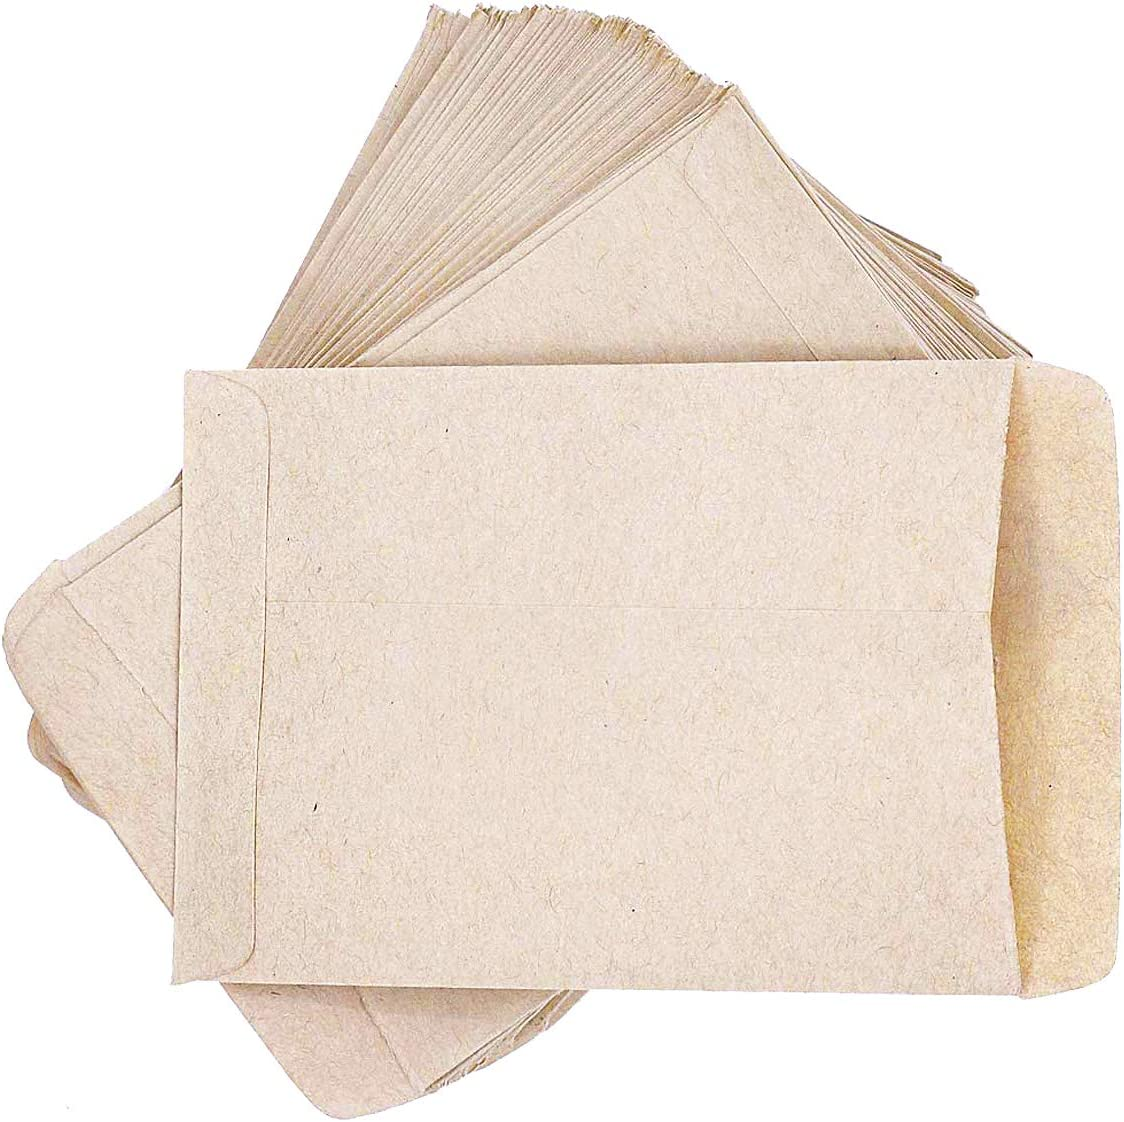 PRUNS trust 120 PCS Seed Max 54% OFF Packets Paper Envelopes Blank Empty